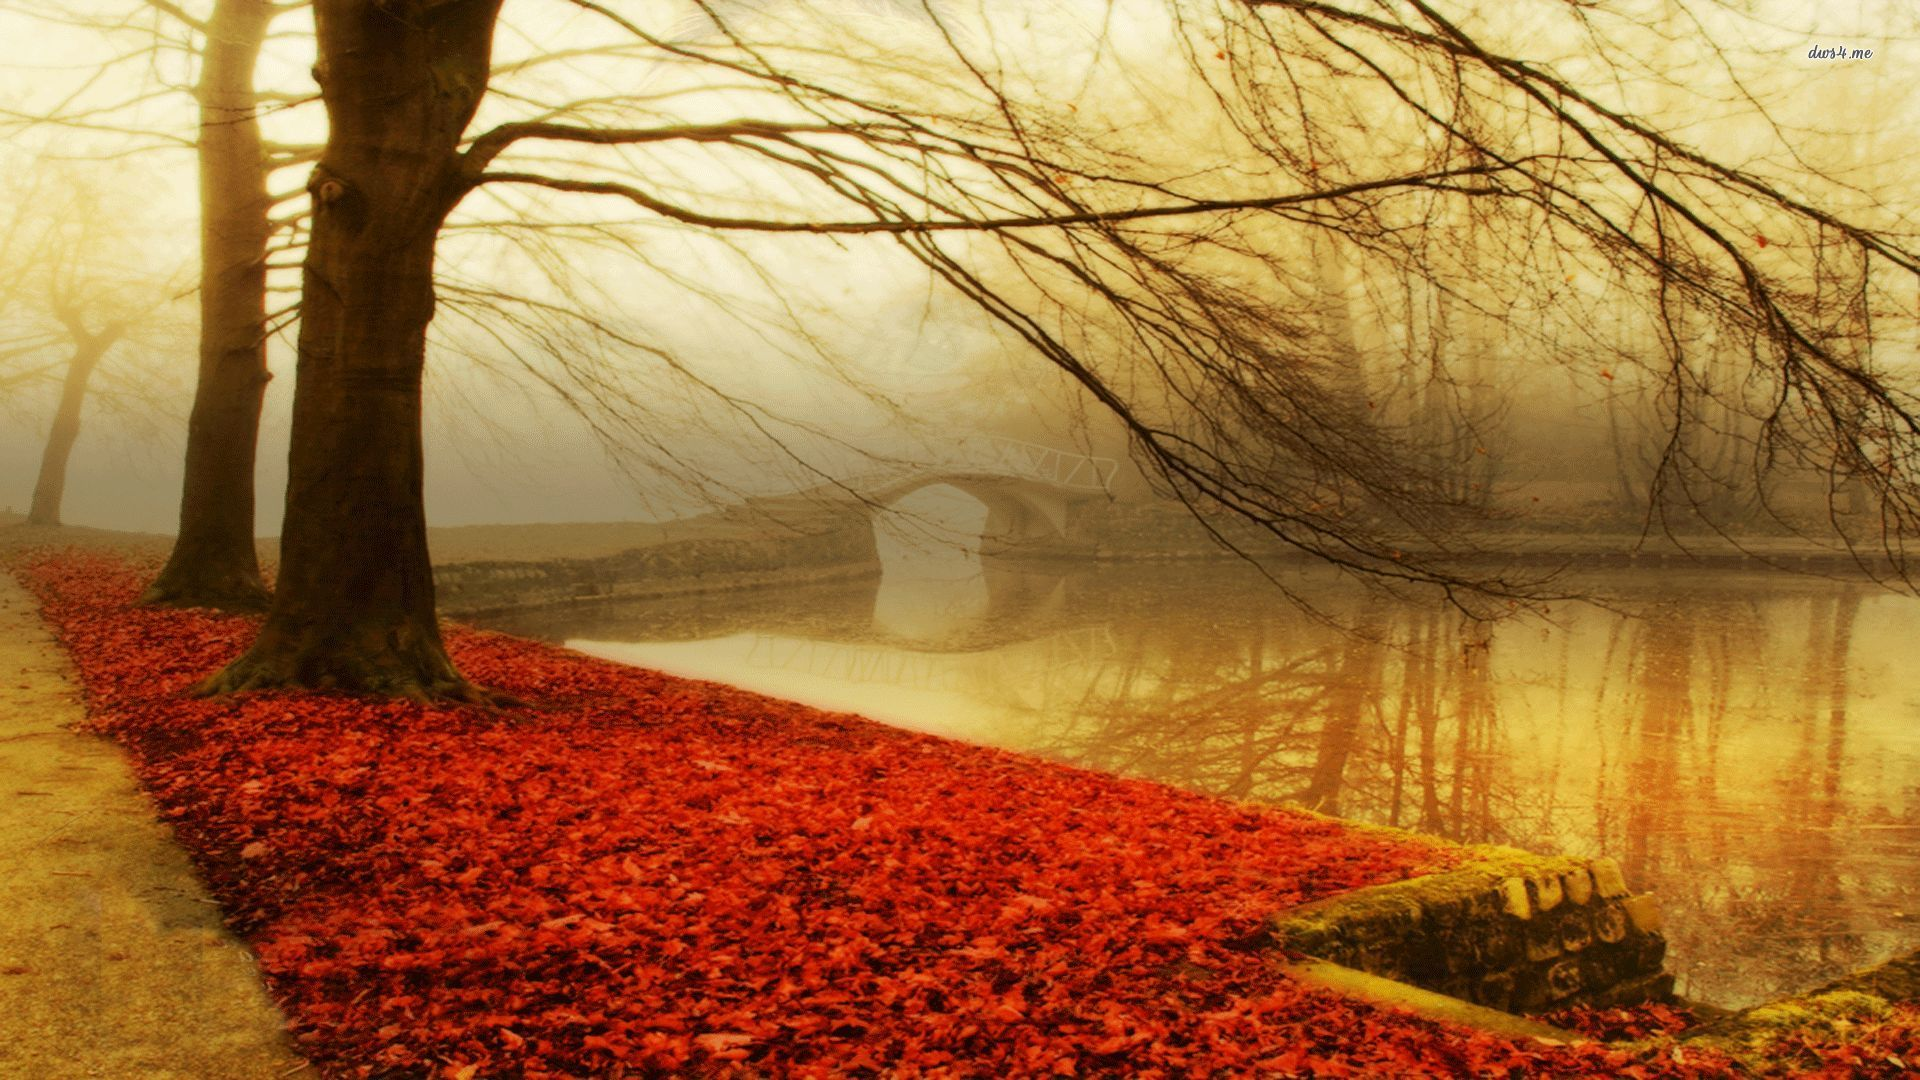 Cool Wallpapers For Fall Trees Wallpapers Autumn Hd Desktop Wallpapers 4k Hd